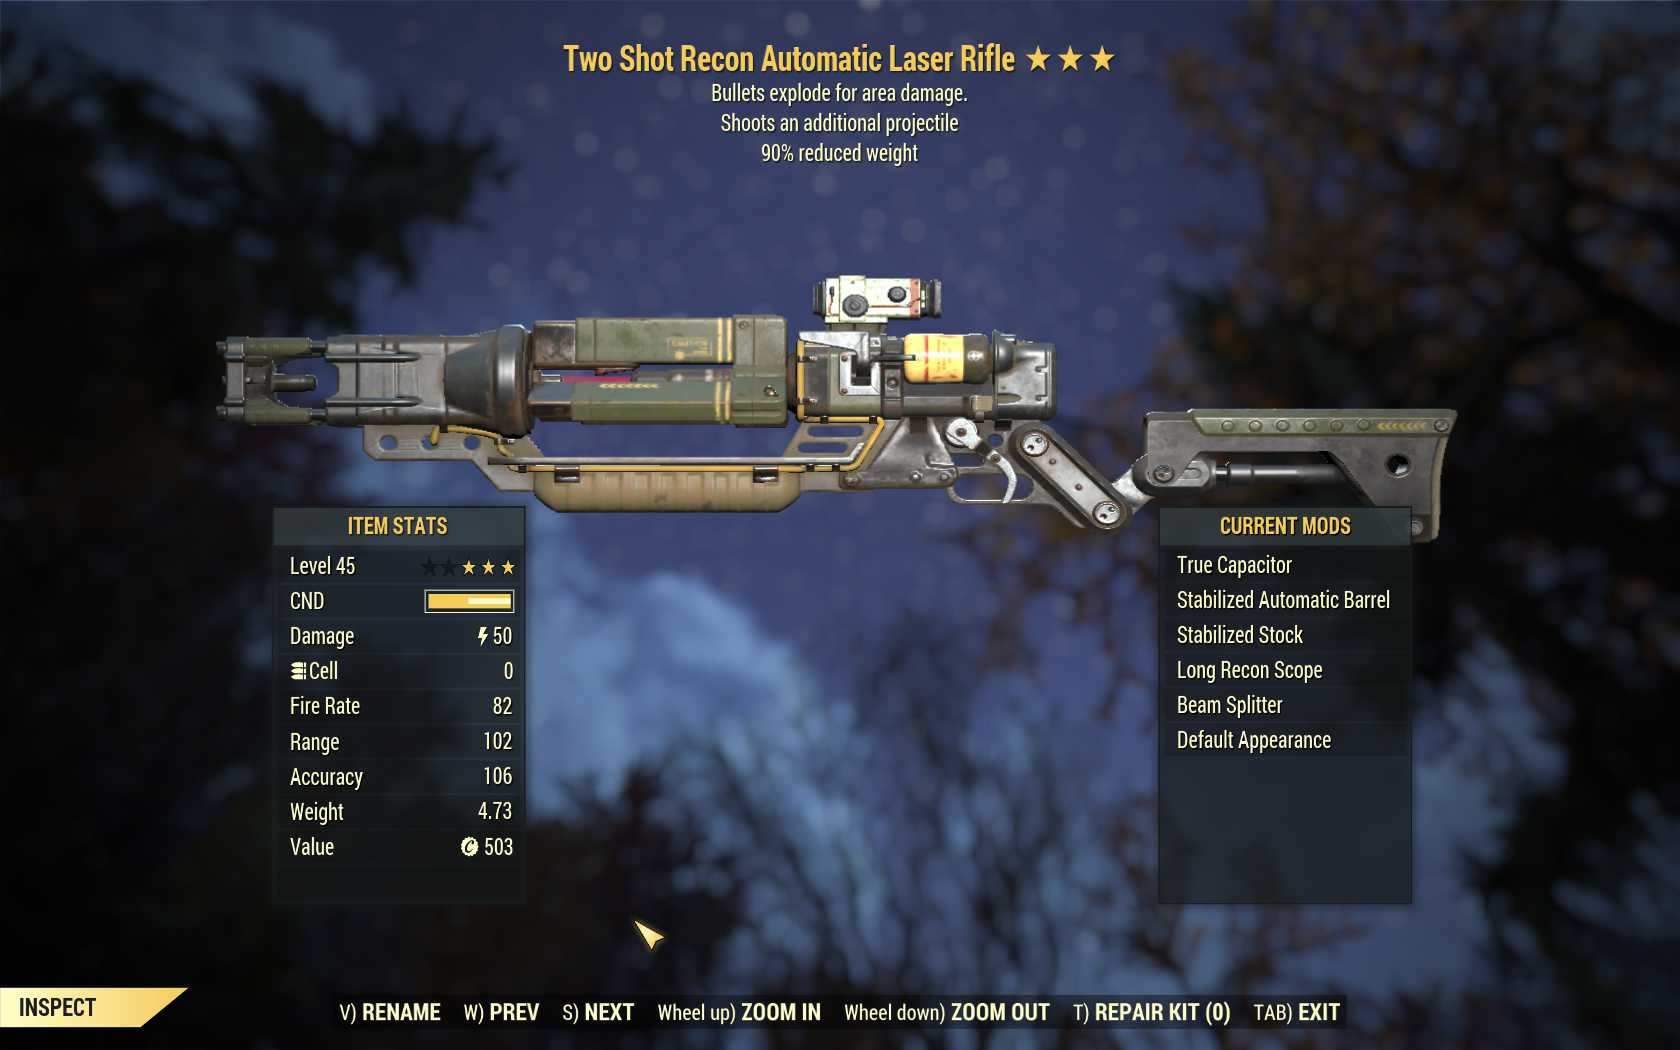 Two Shot Explosive Laser rifle (90% reduced weight)